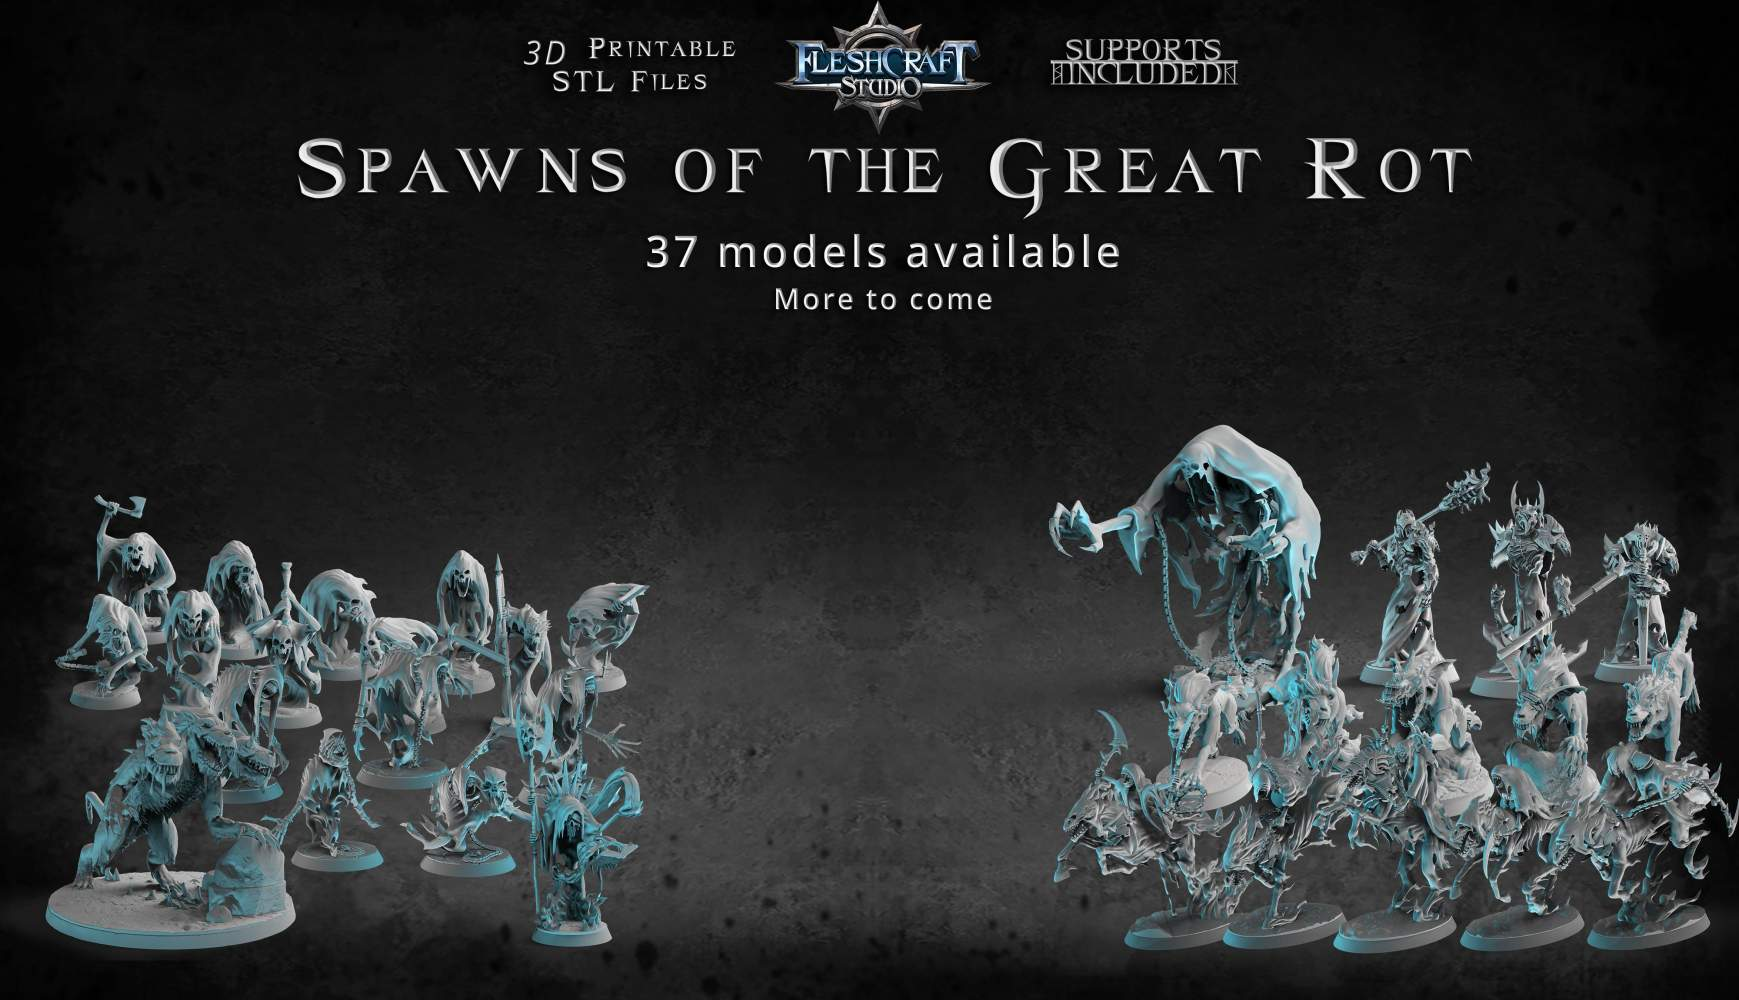 Spawns of the Great Rot